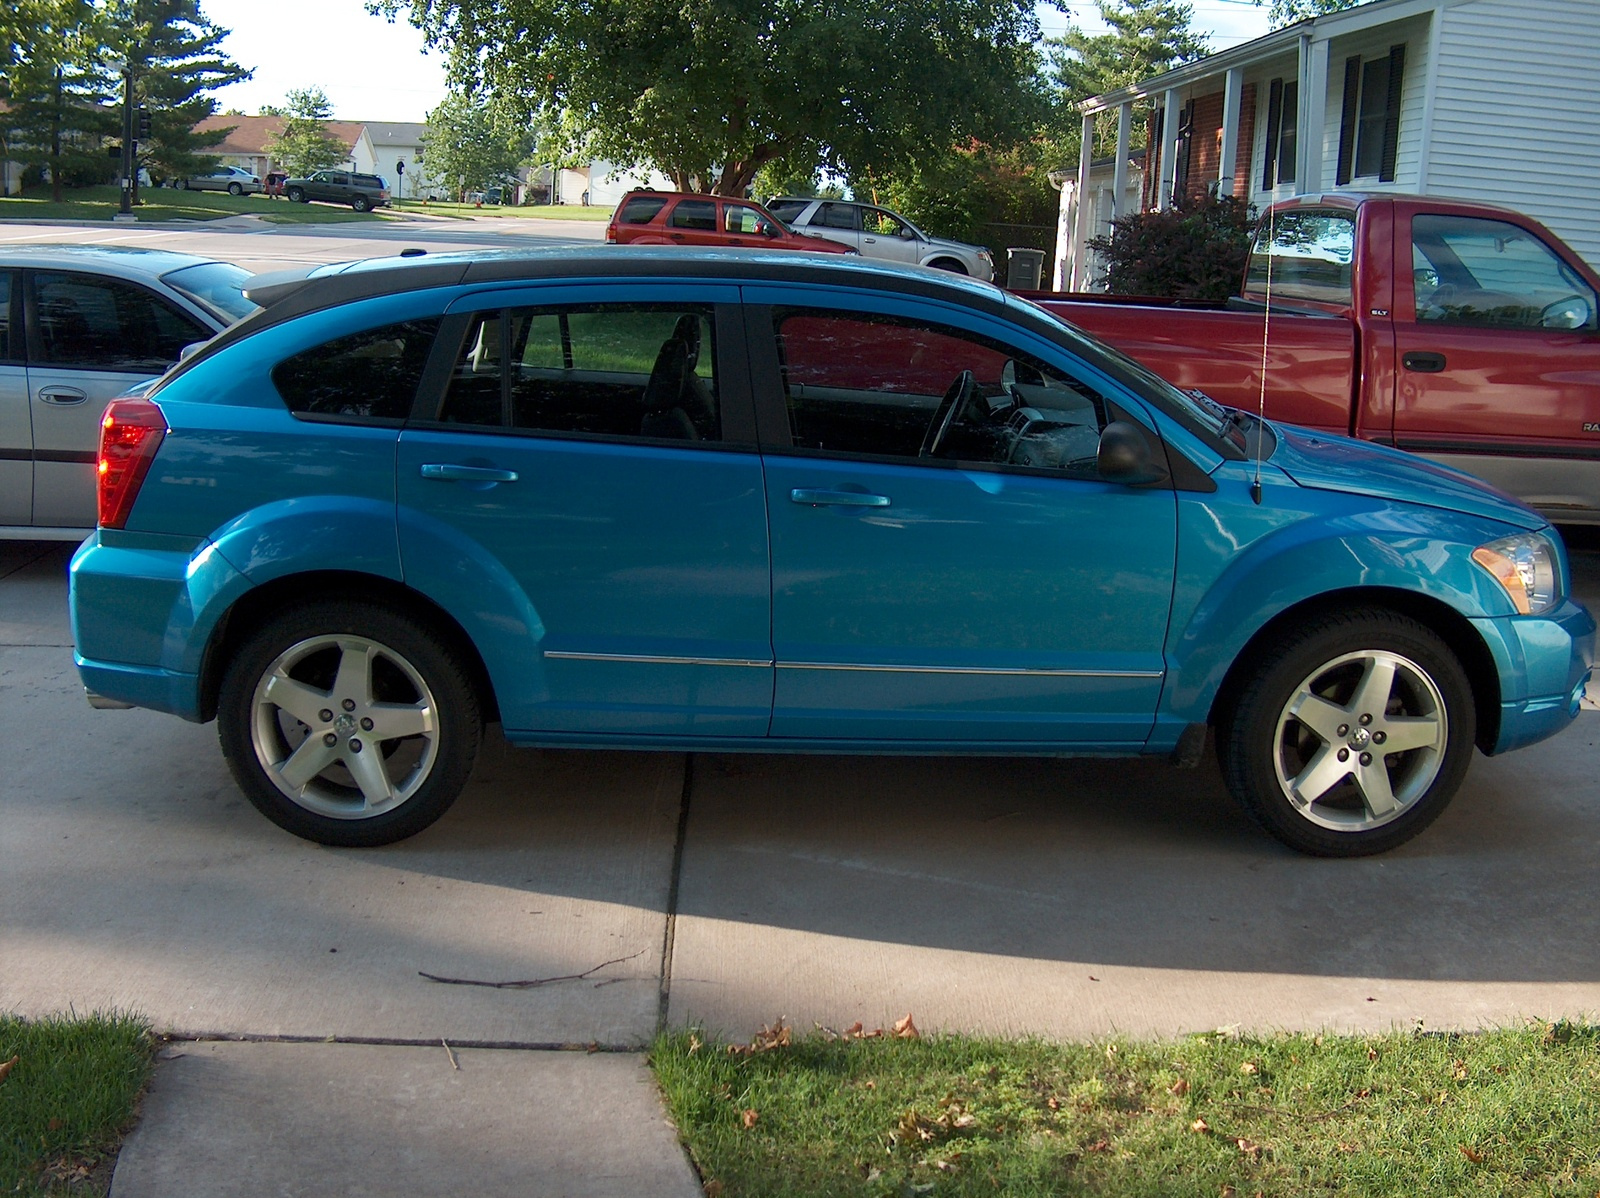 2008 Dodge Caliber R/T AWD - Pictures - Picture of 2008 Dodge Caliber ...